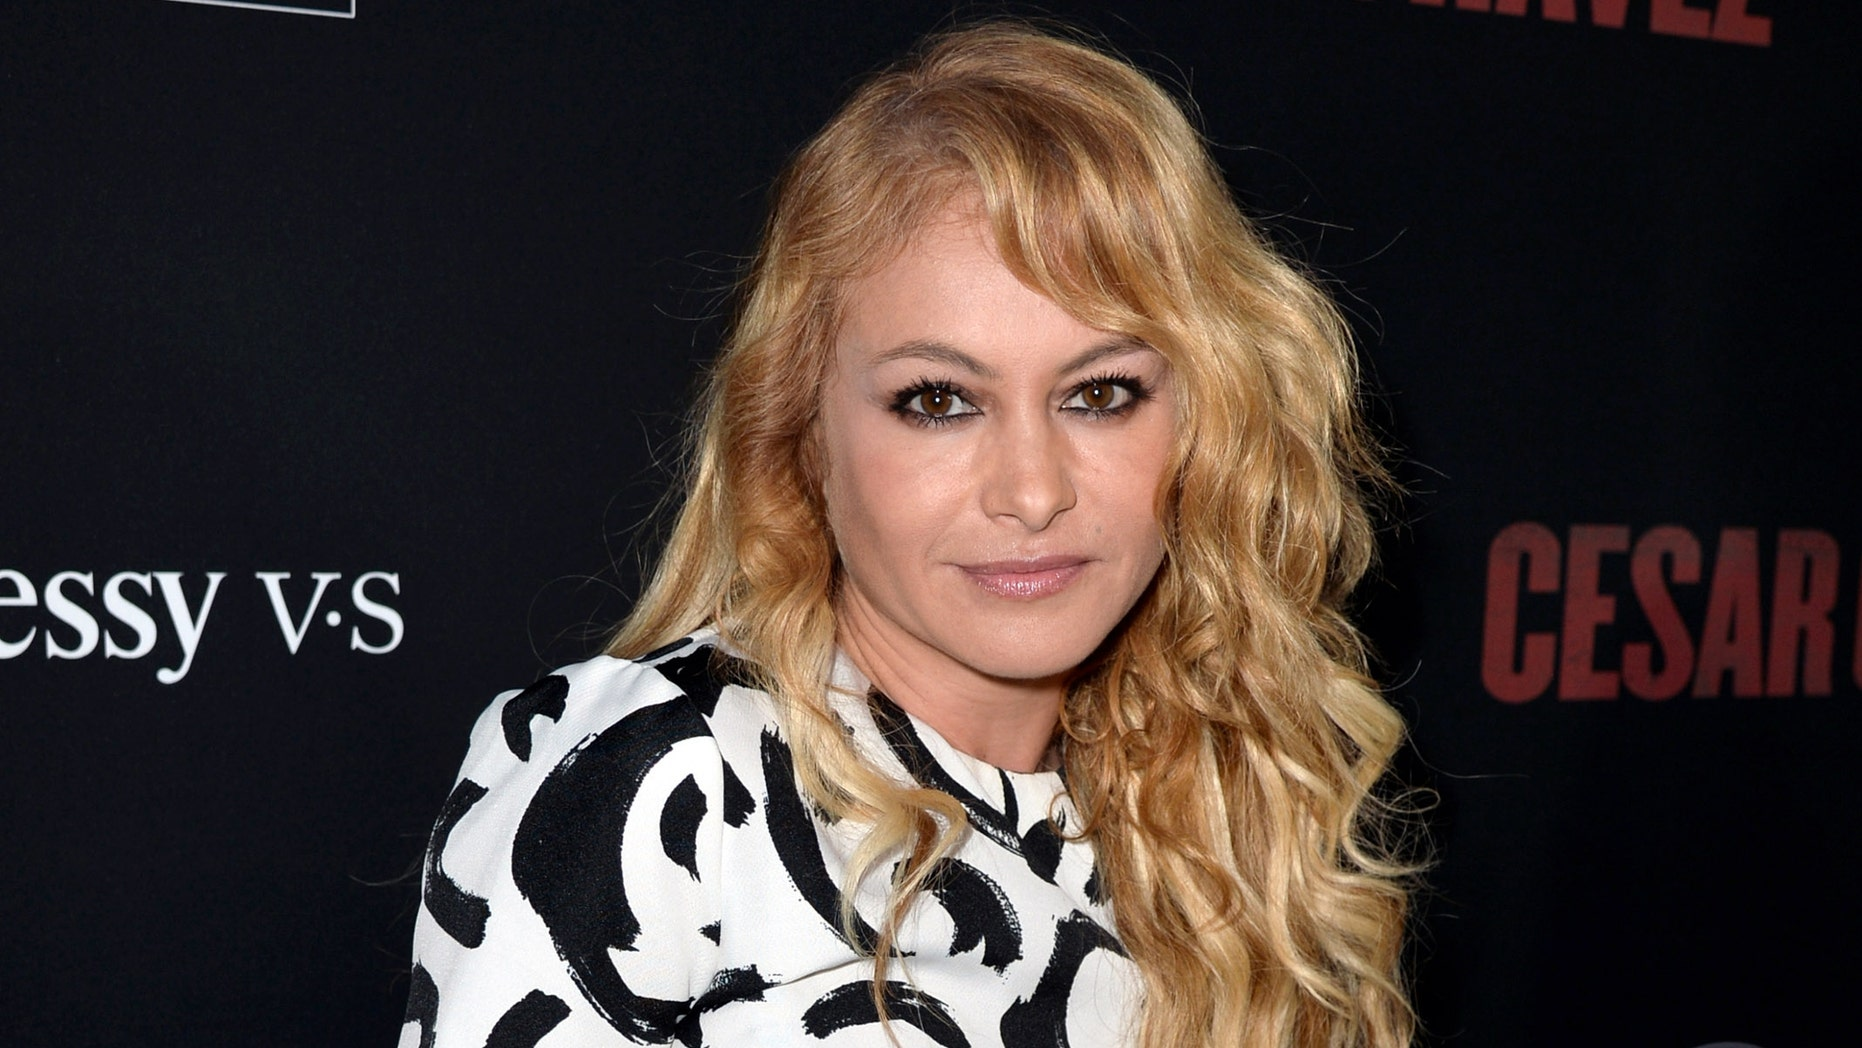 """LOS ANGELES, CA - MARCH 20:  Singer Paulina Rubio arrives at the premiere of Pantelion Films And Participant Media's """"Cesar Chavez"""" at the Chinese Theatre on March 20, 2014 in Los Angeles, California.  (Photo by Kevin Winter/Getty Images)"""